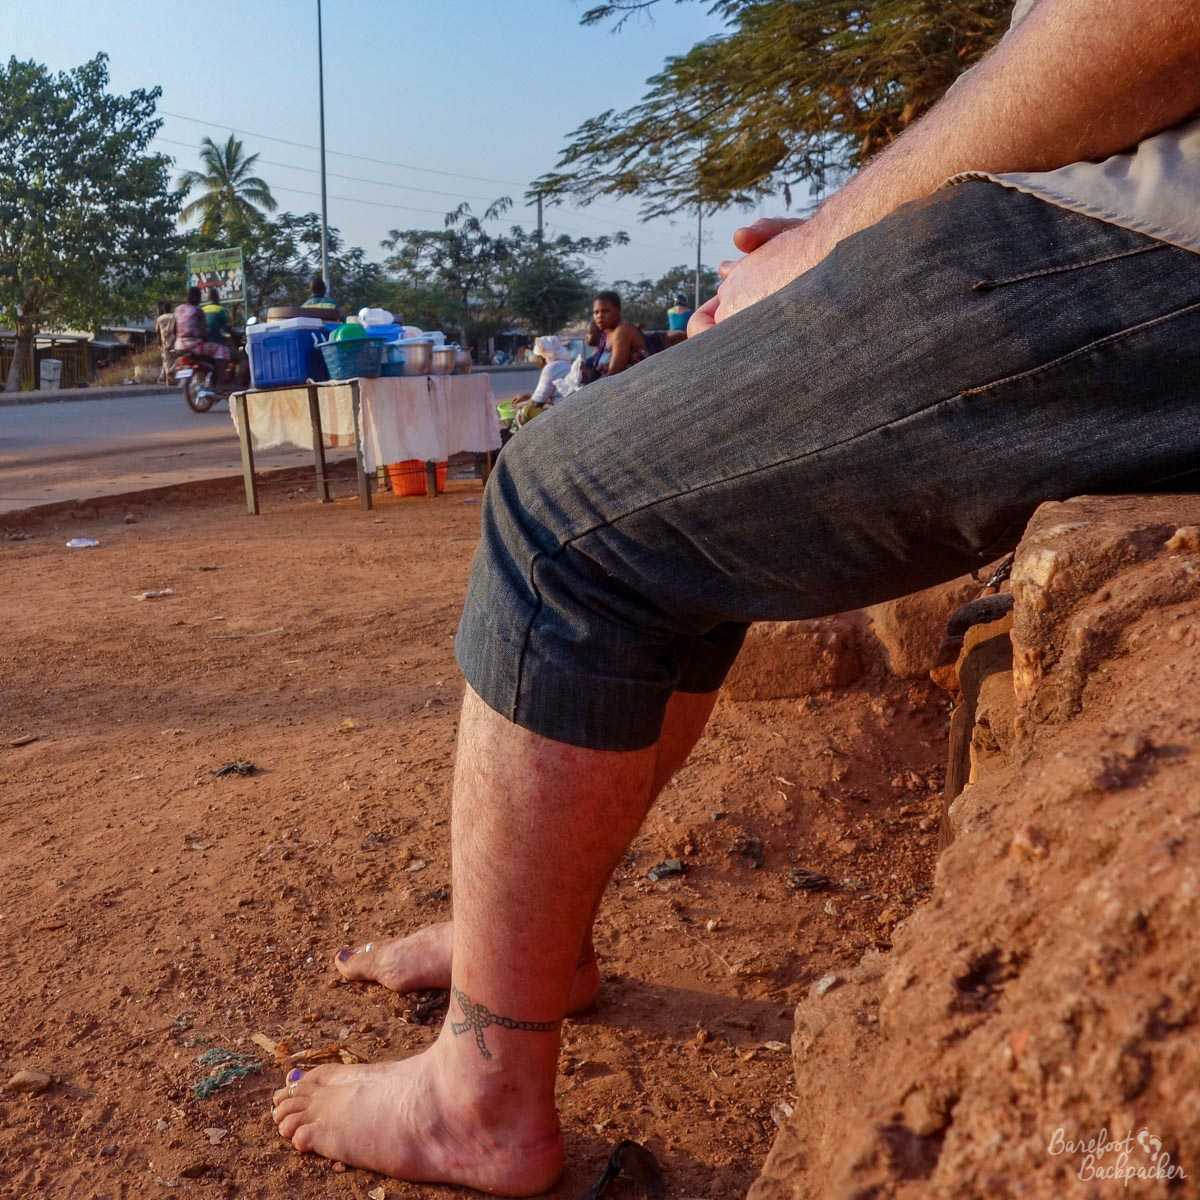 Sitting barefoot by a roadside in Natitingou, Benin, while a woman watches on